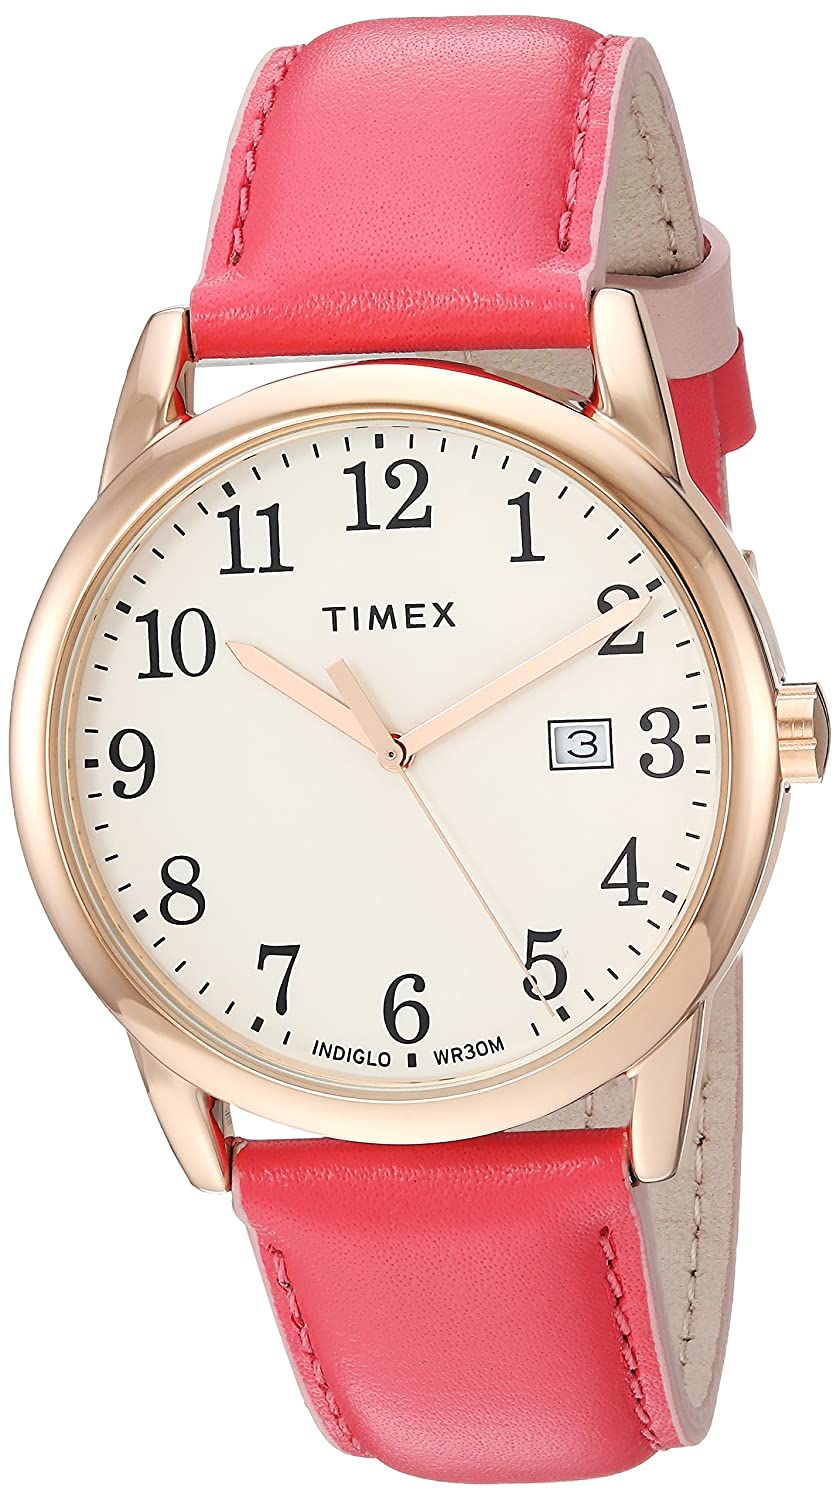 1404a0c7142b Amazon.com  Timex Women s TW2R62600 Easy Reader 38mm Blue Gold-Tone Leather  Strap Watch  Timex  Watches